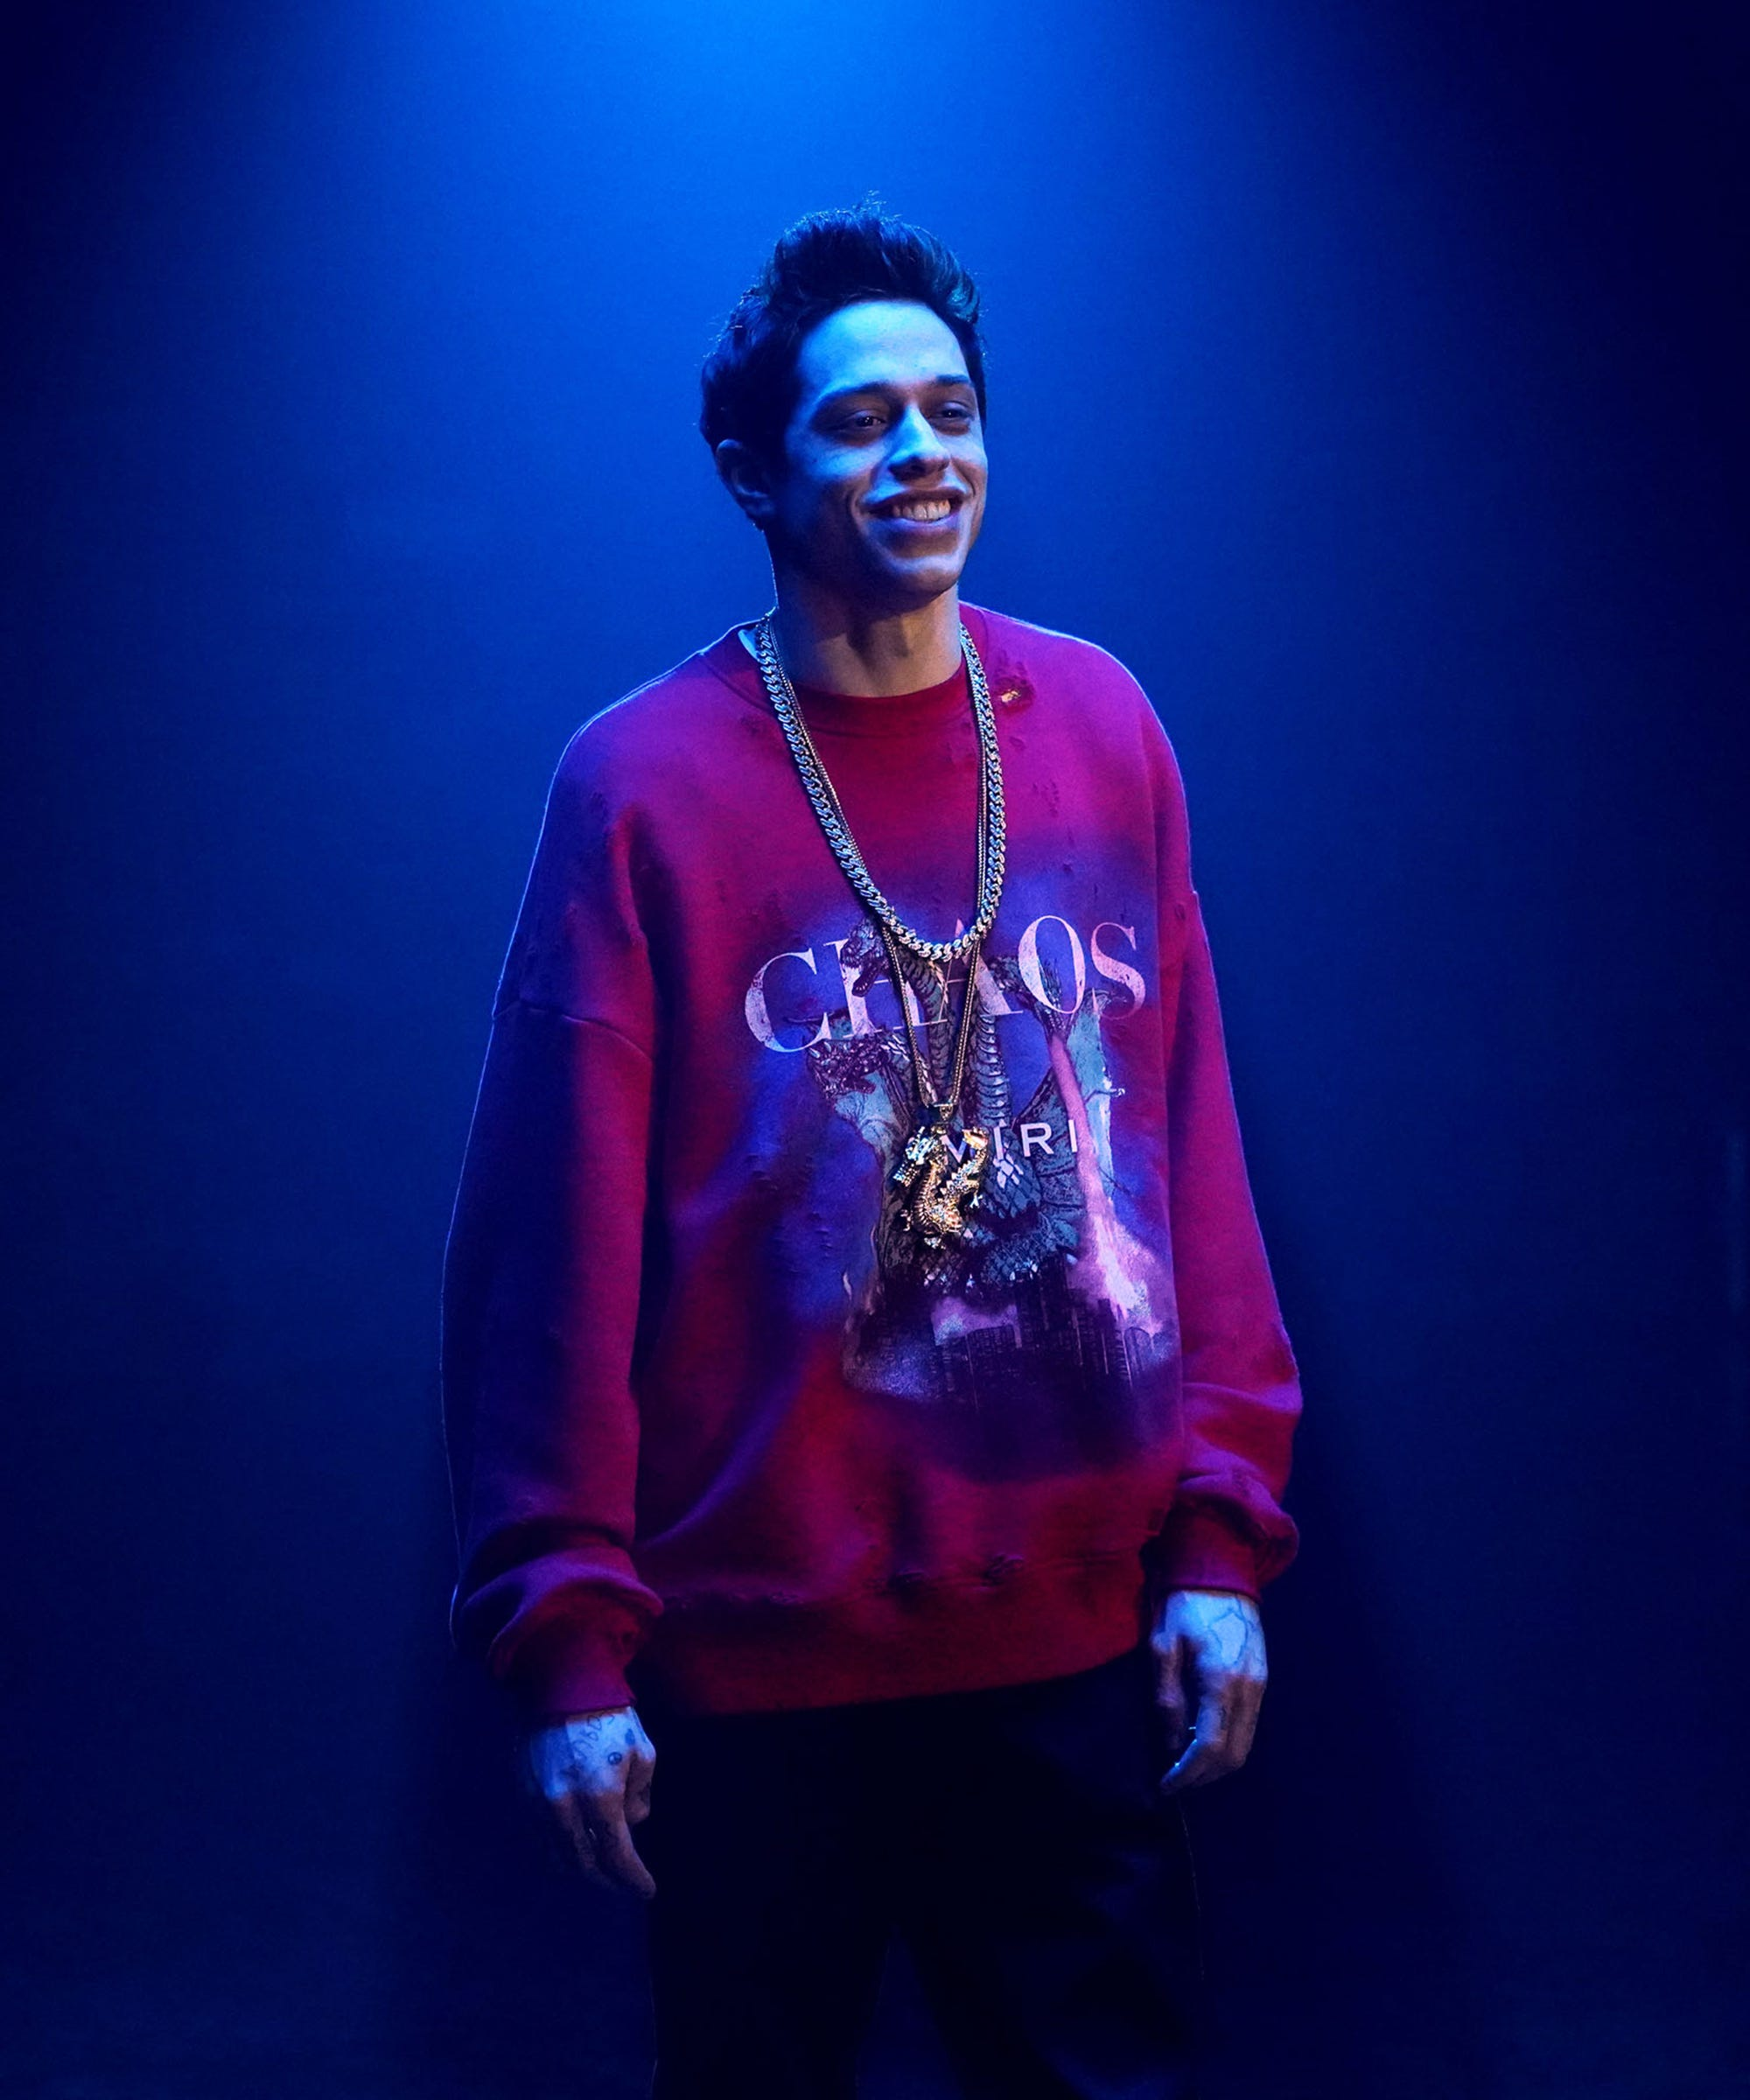 Pete Davidson's Game Of Thrones Rap On SNL Reveals His Real Favorite Show